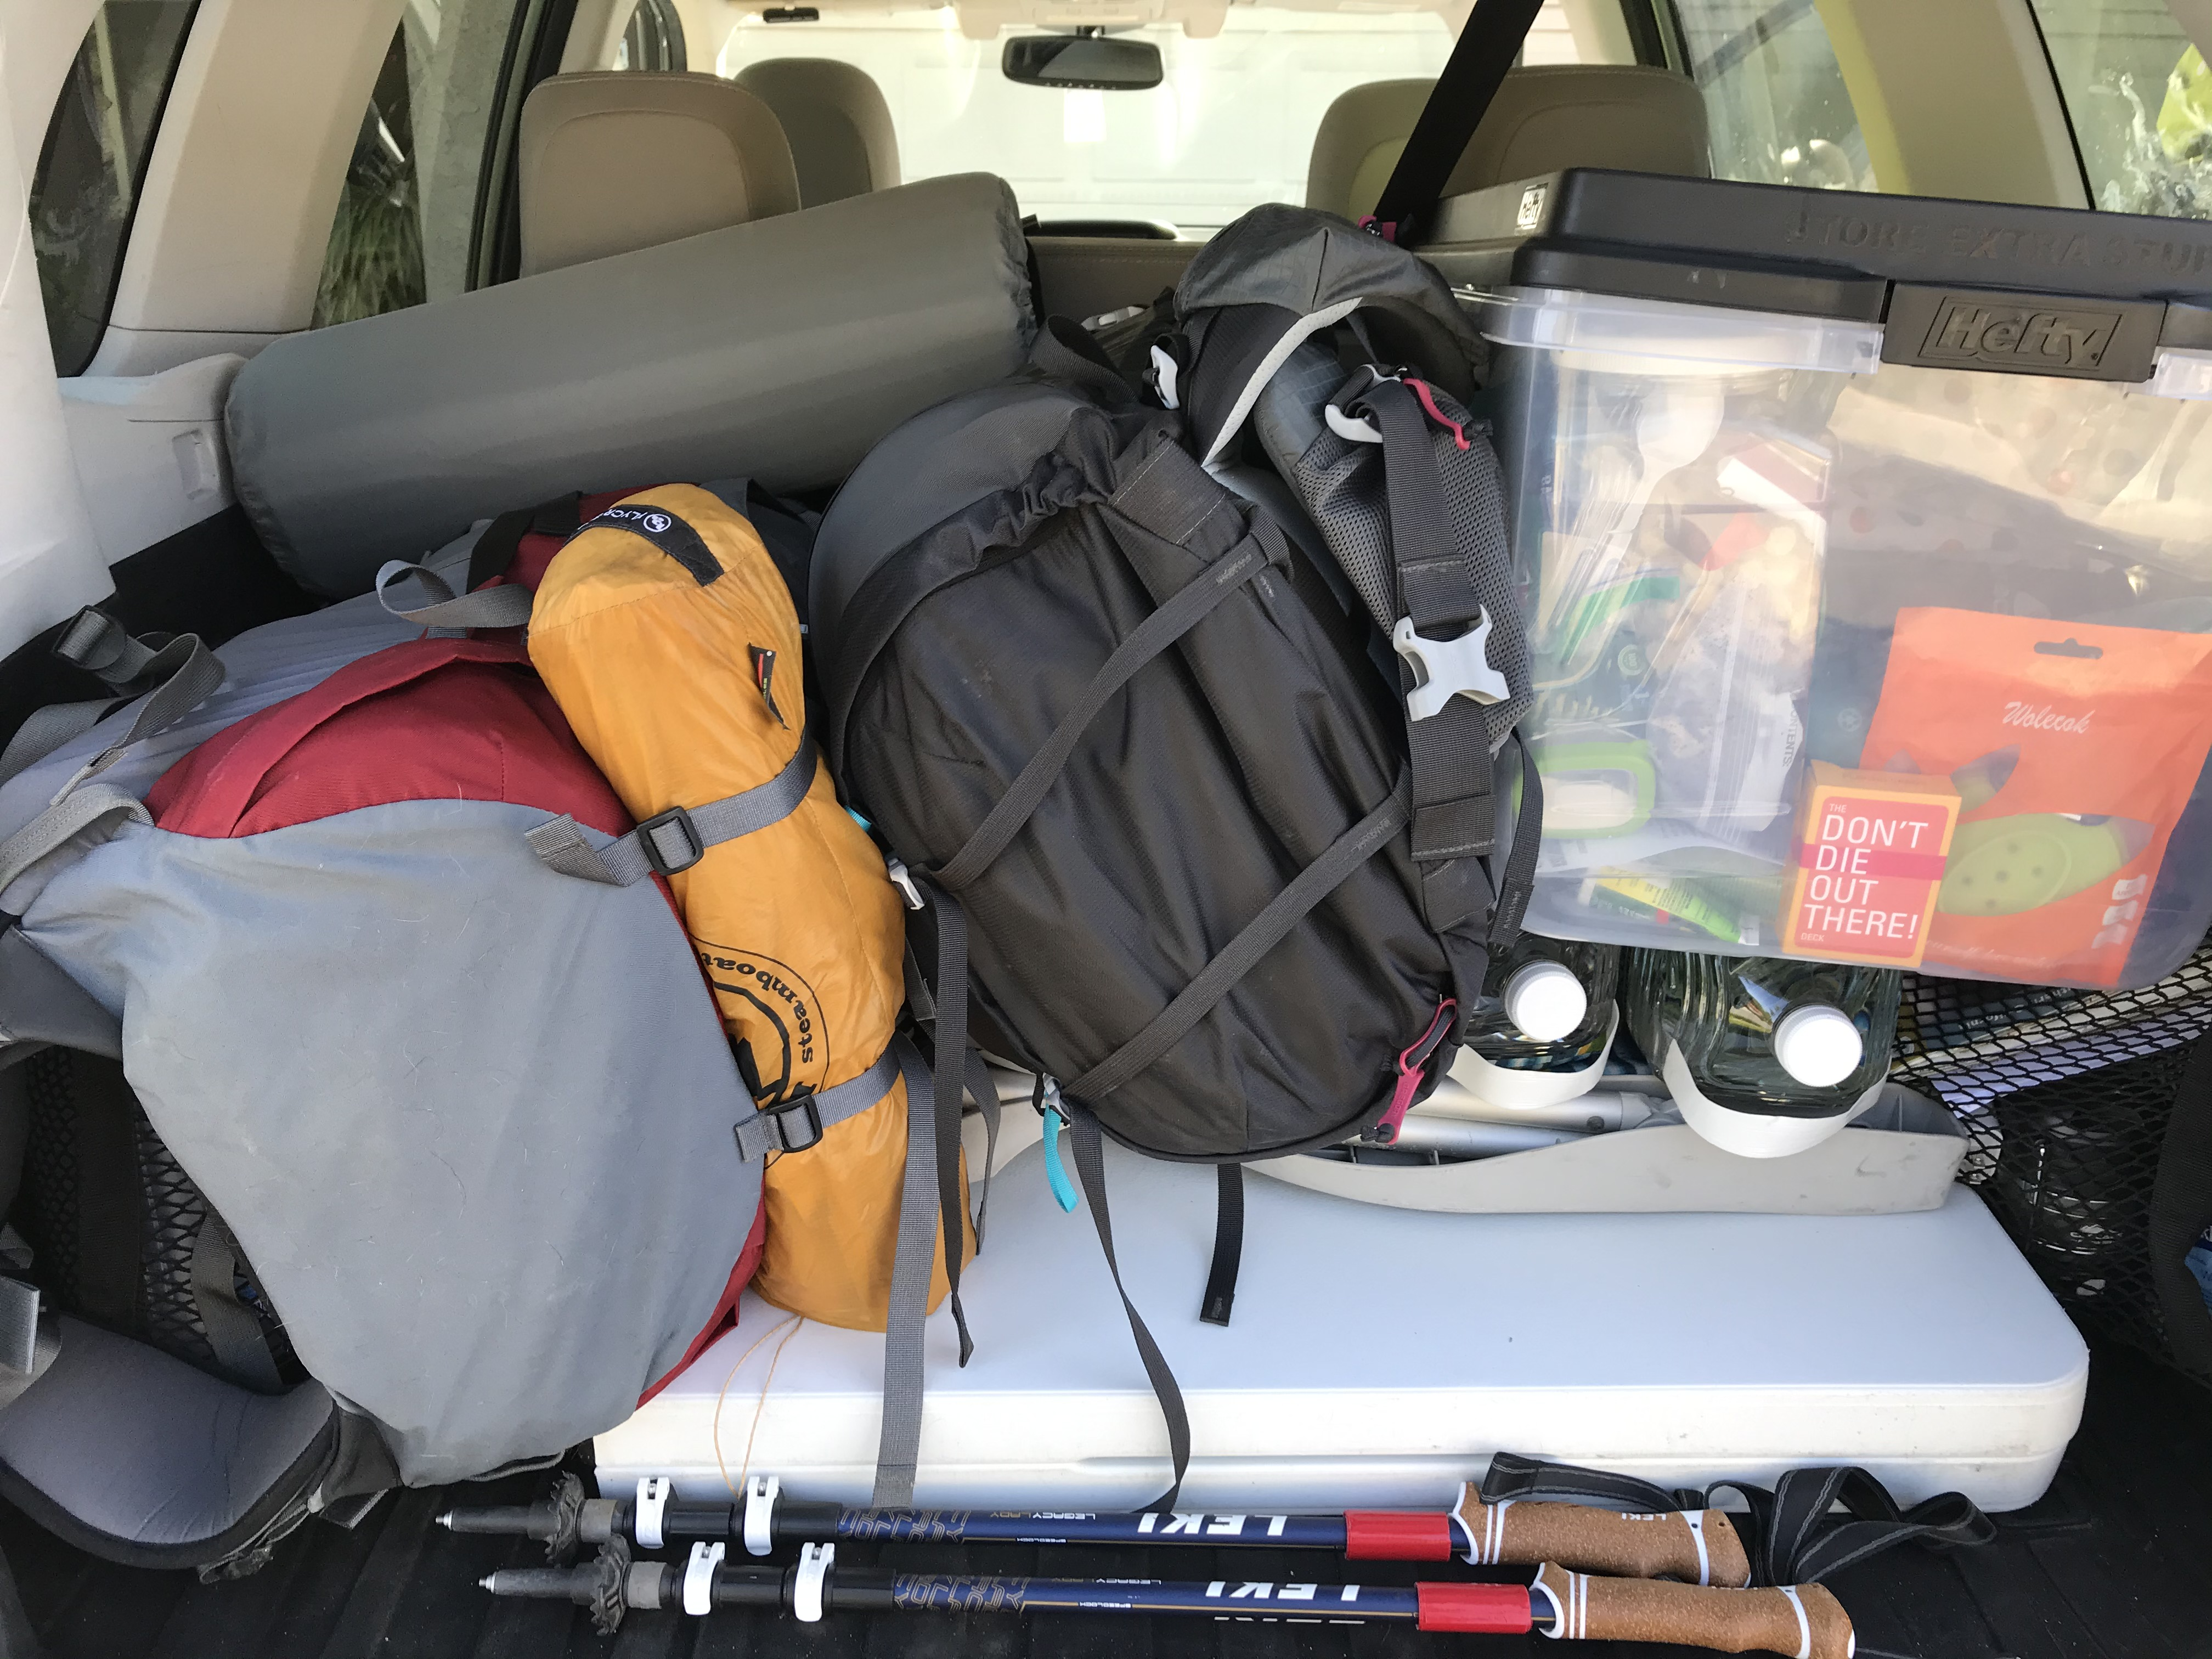 Backpacking Gear in the Car